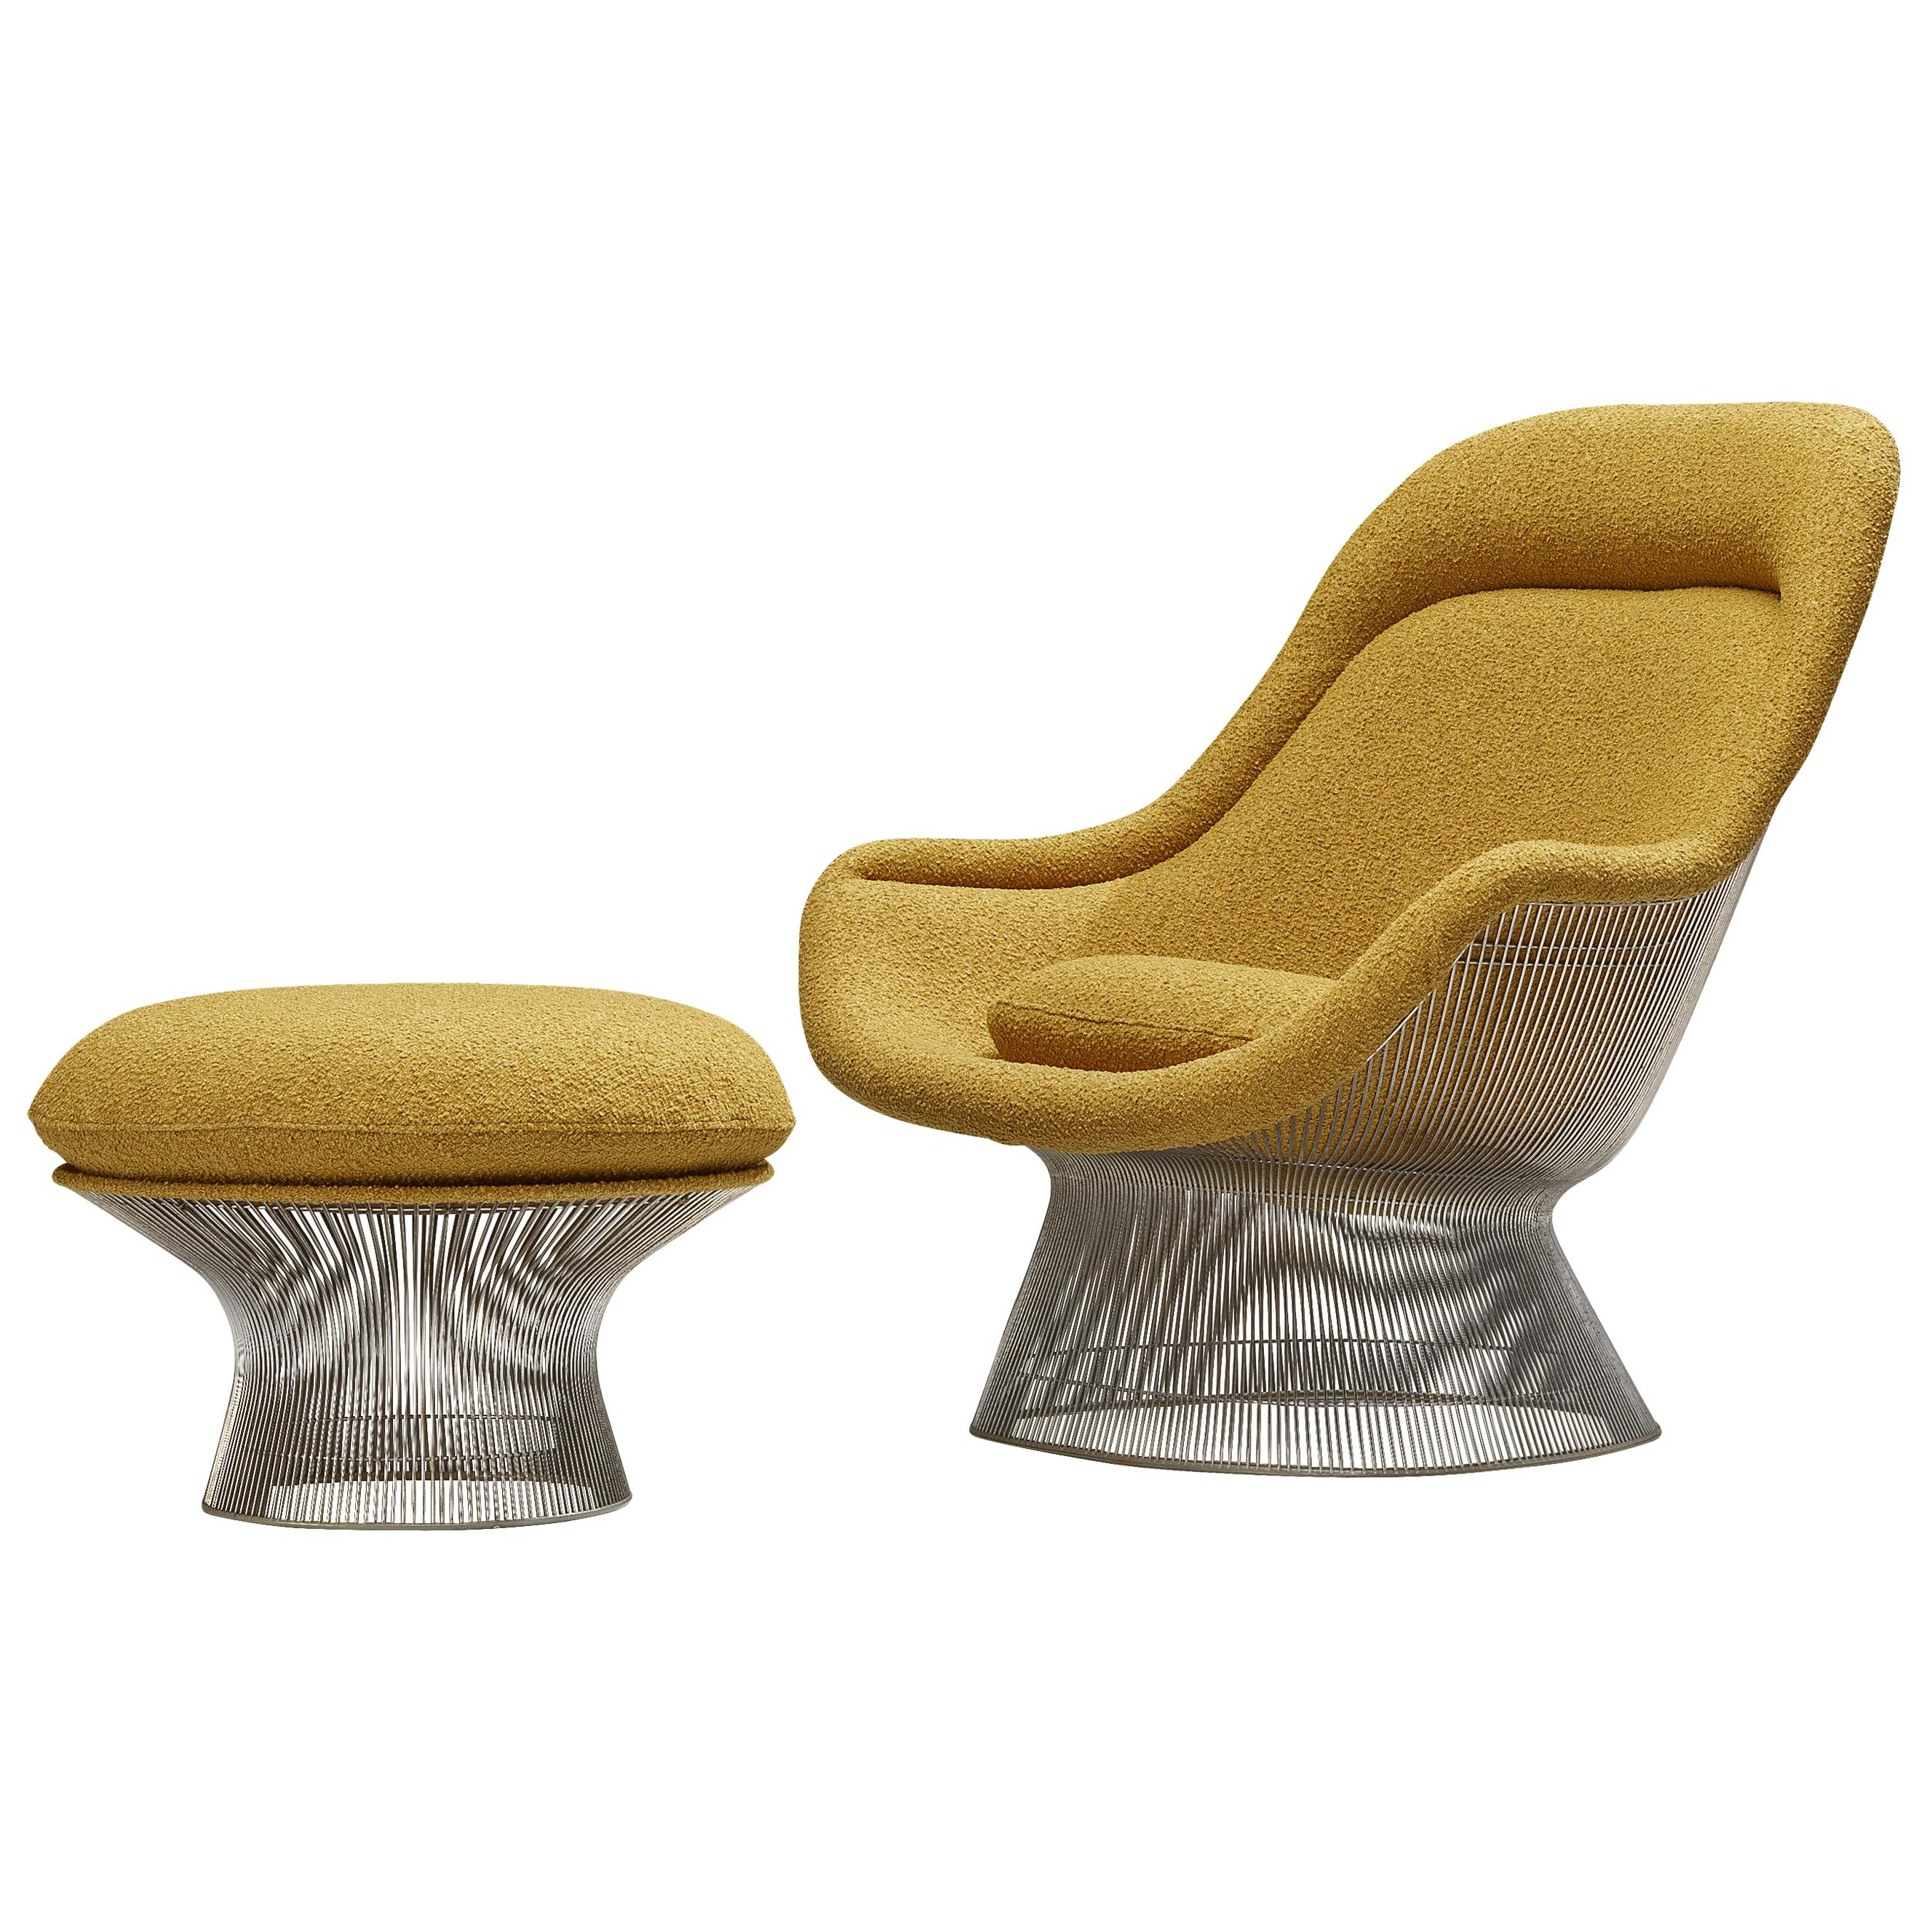 Iconic Warren Platner for Knoll Lounge Chair '1705' in Steel and Fabric